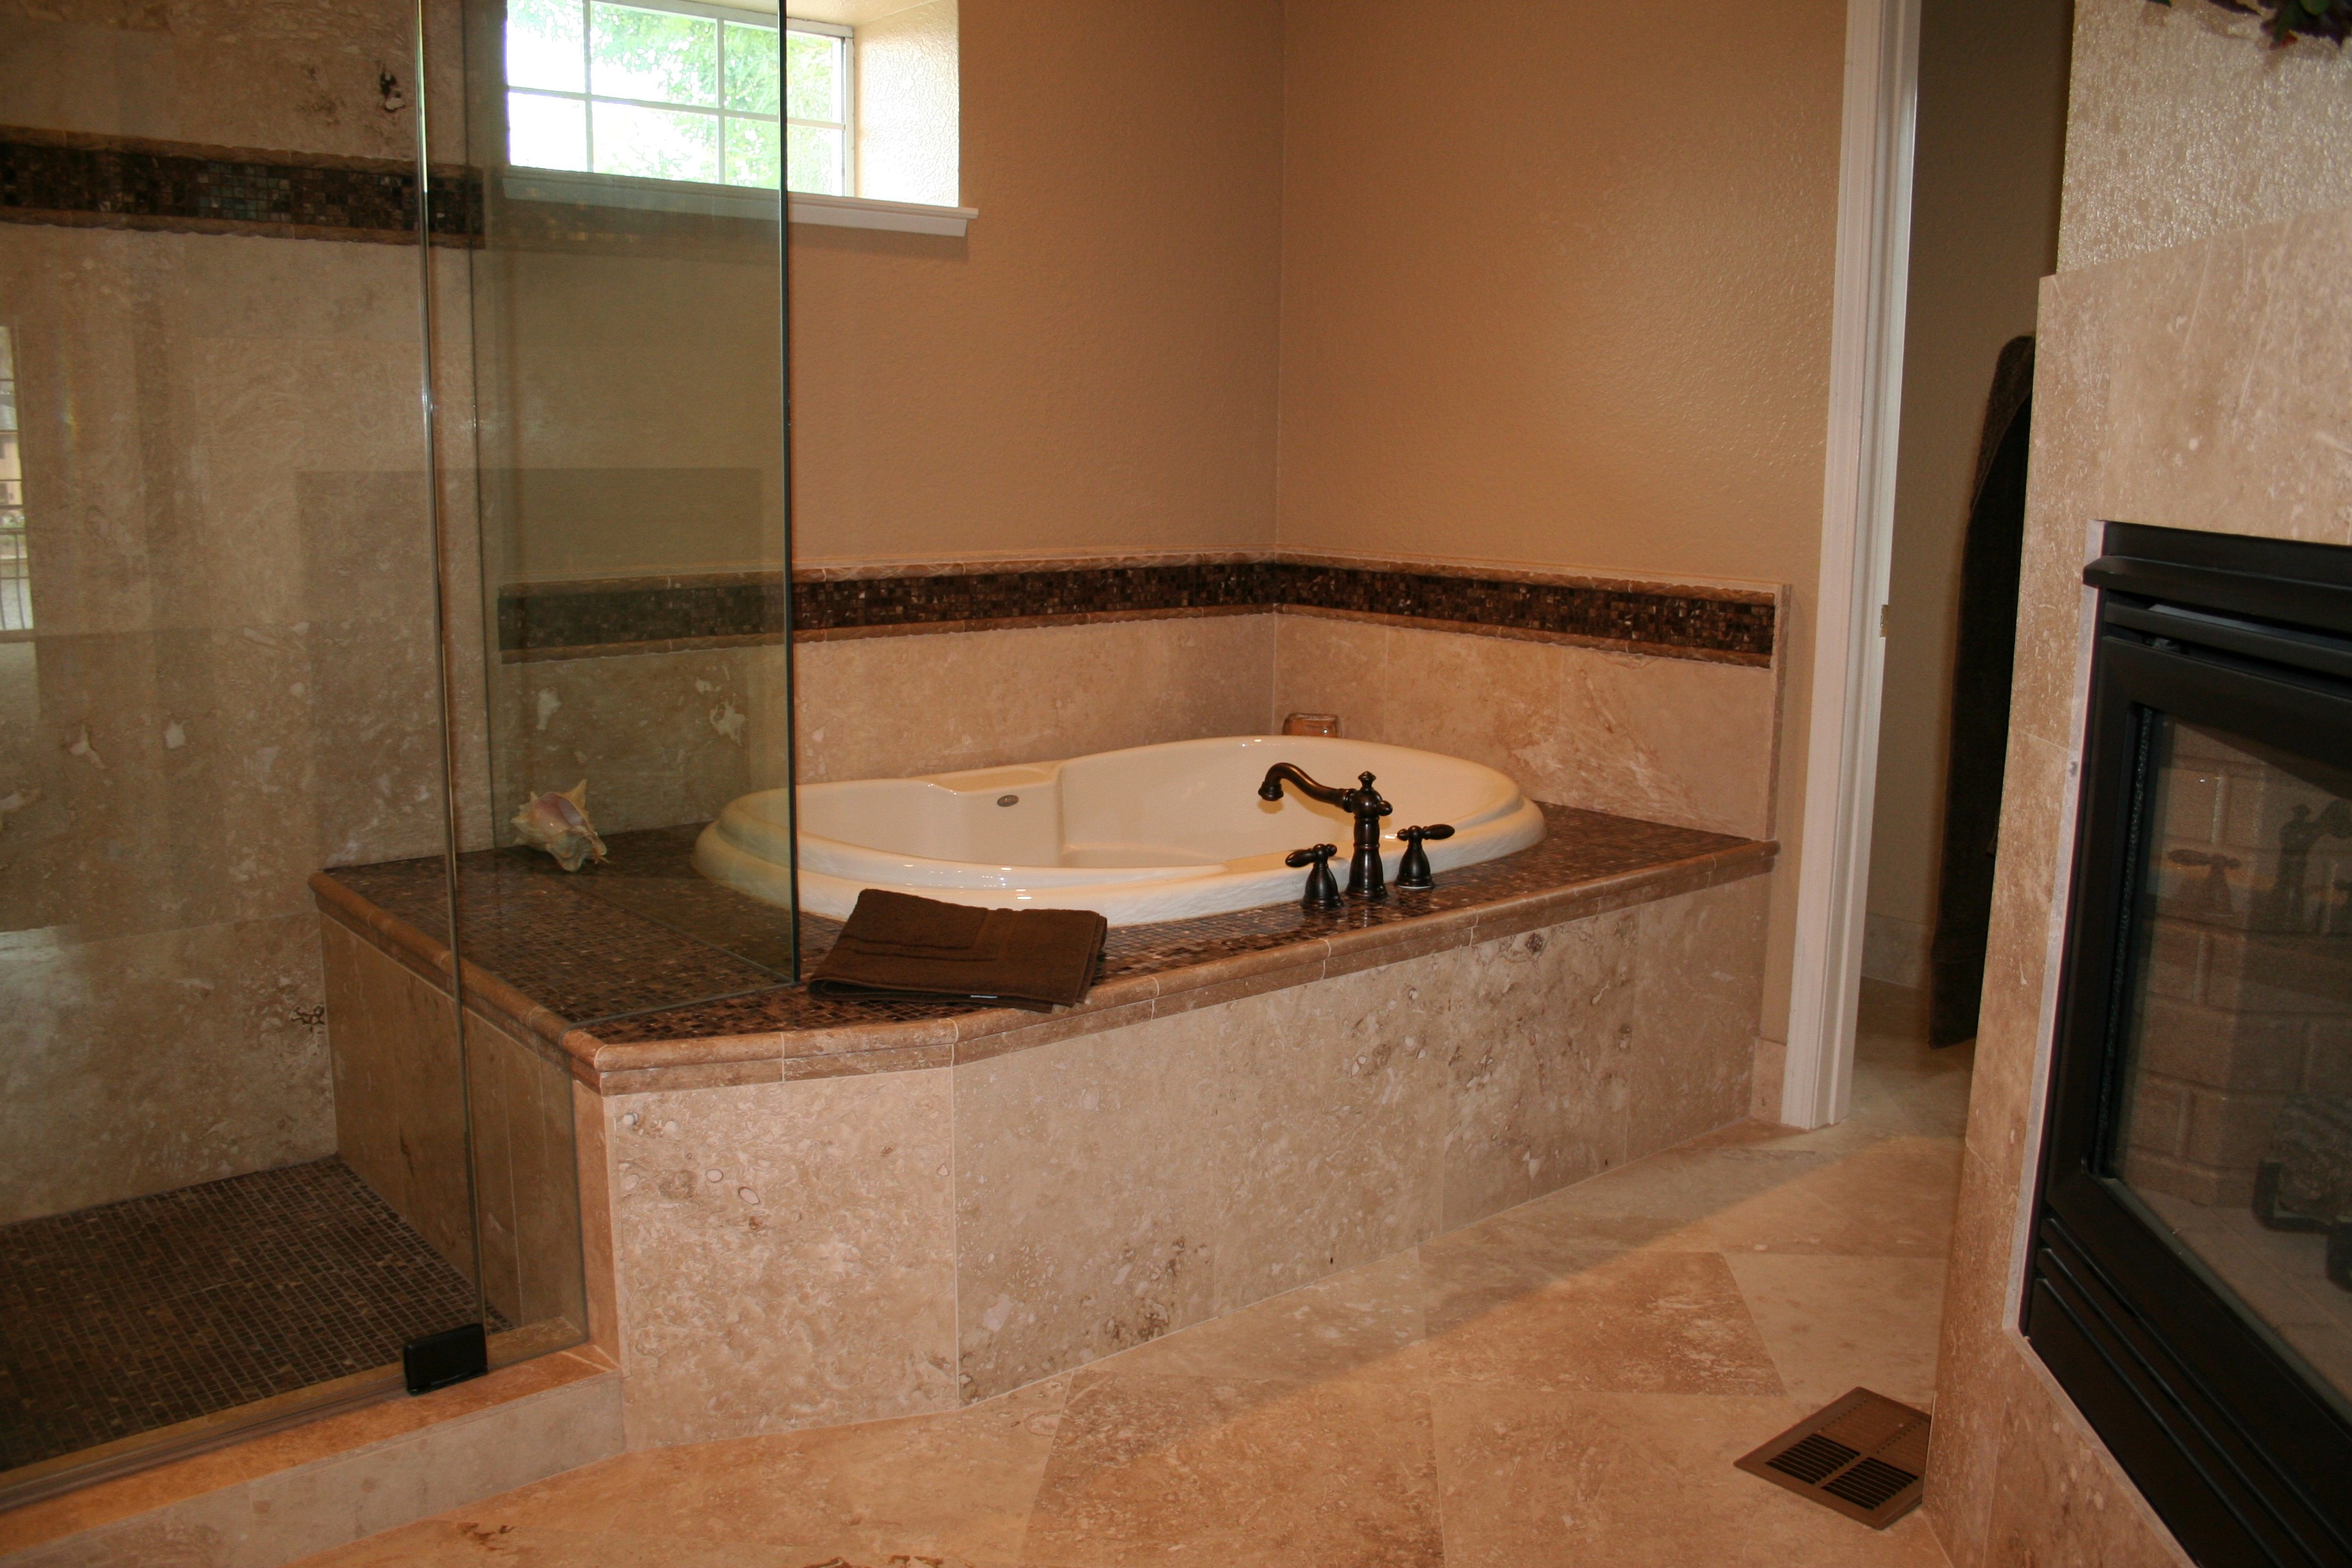 design ideas e decorations cool ne omaha bathroom remodel furniture inspiring remodeling amazing contractors with